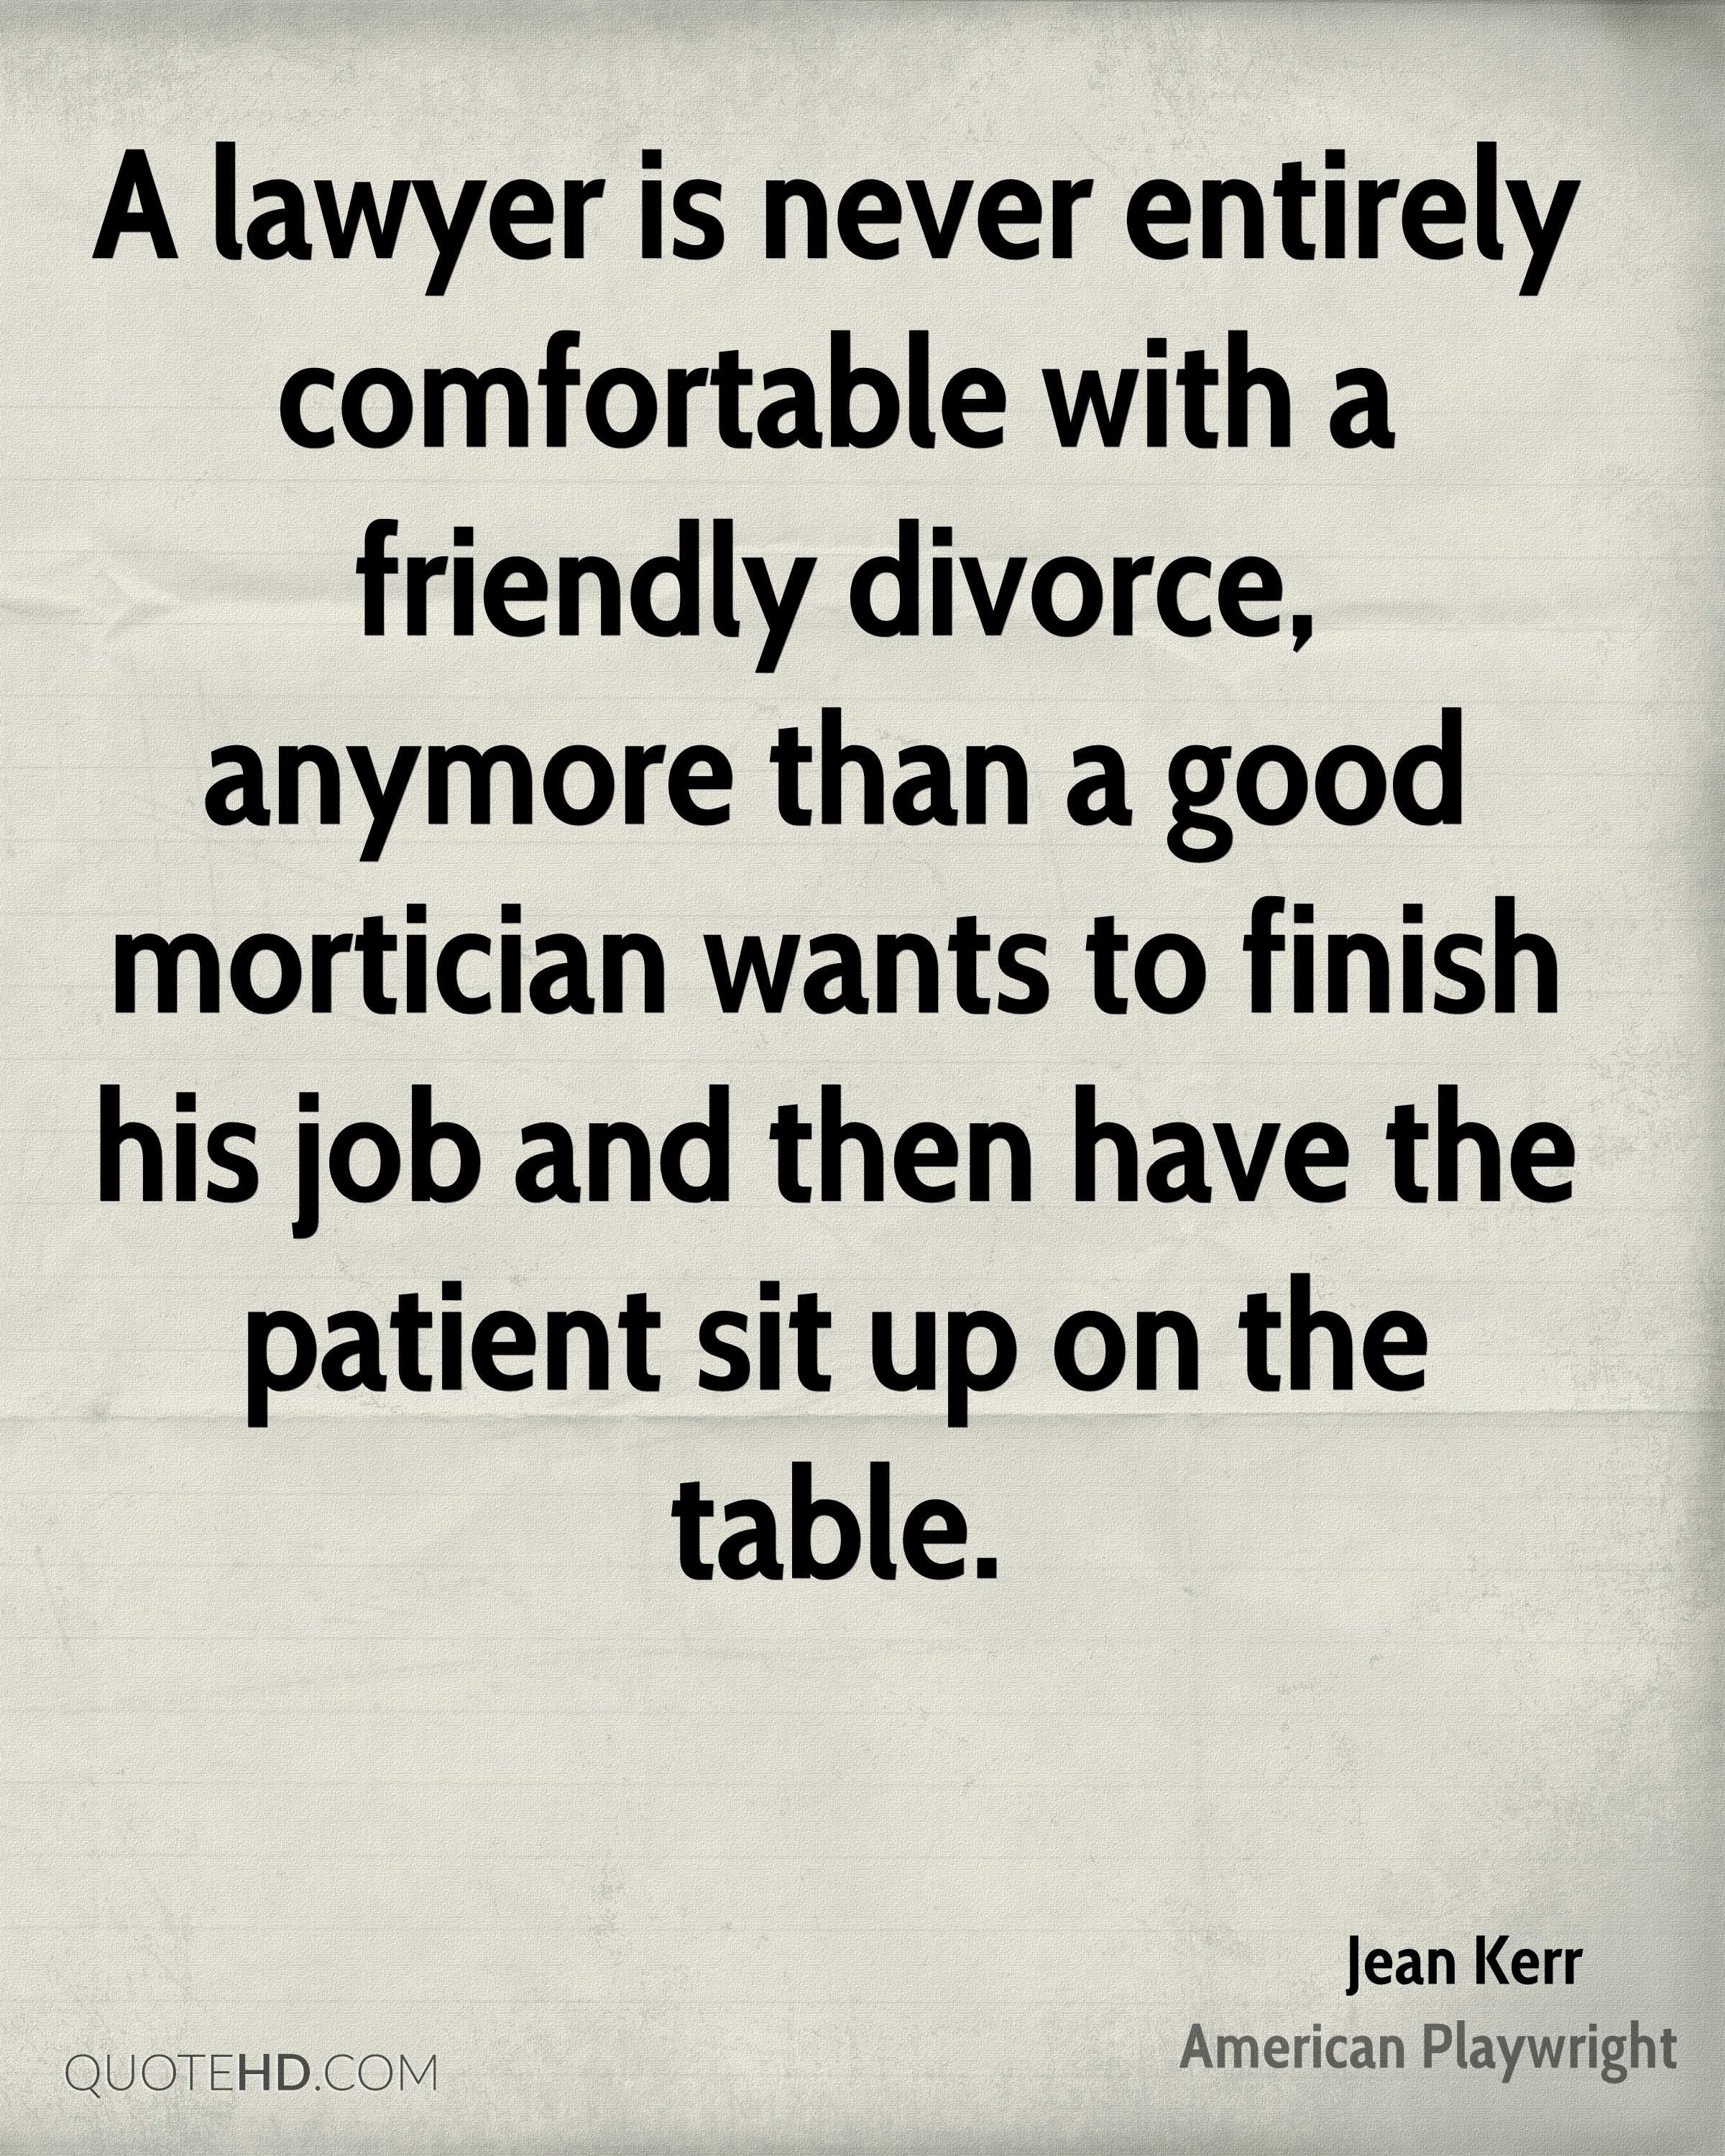 A lawyer is never entirely comfortable with a friendly divorce, anymore than a good mortician wants to finish his job and then have the patient sit up on the table.